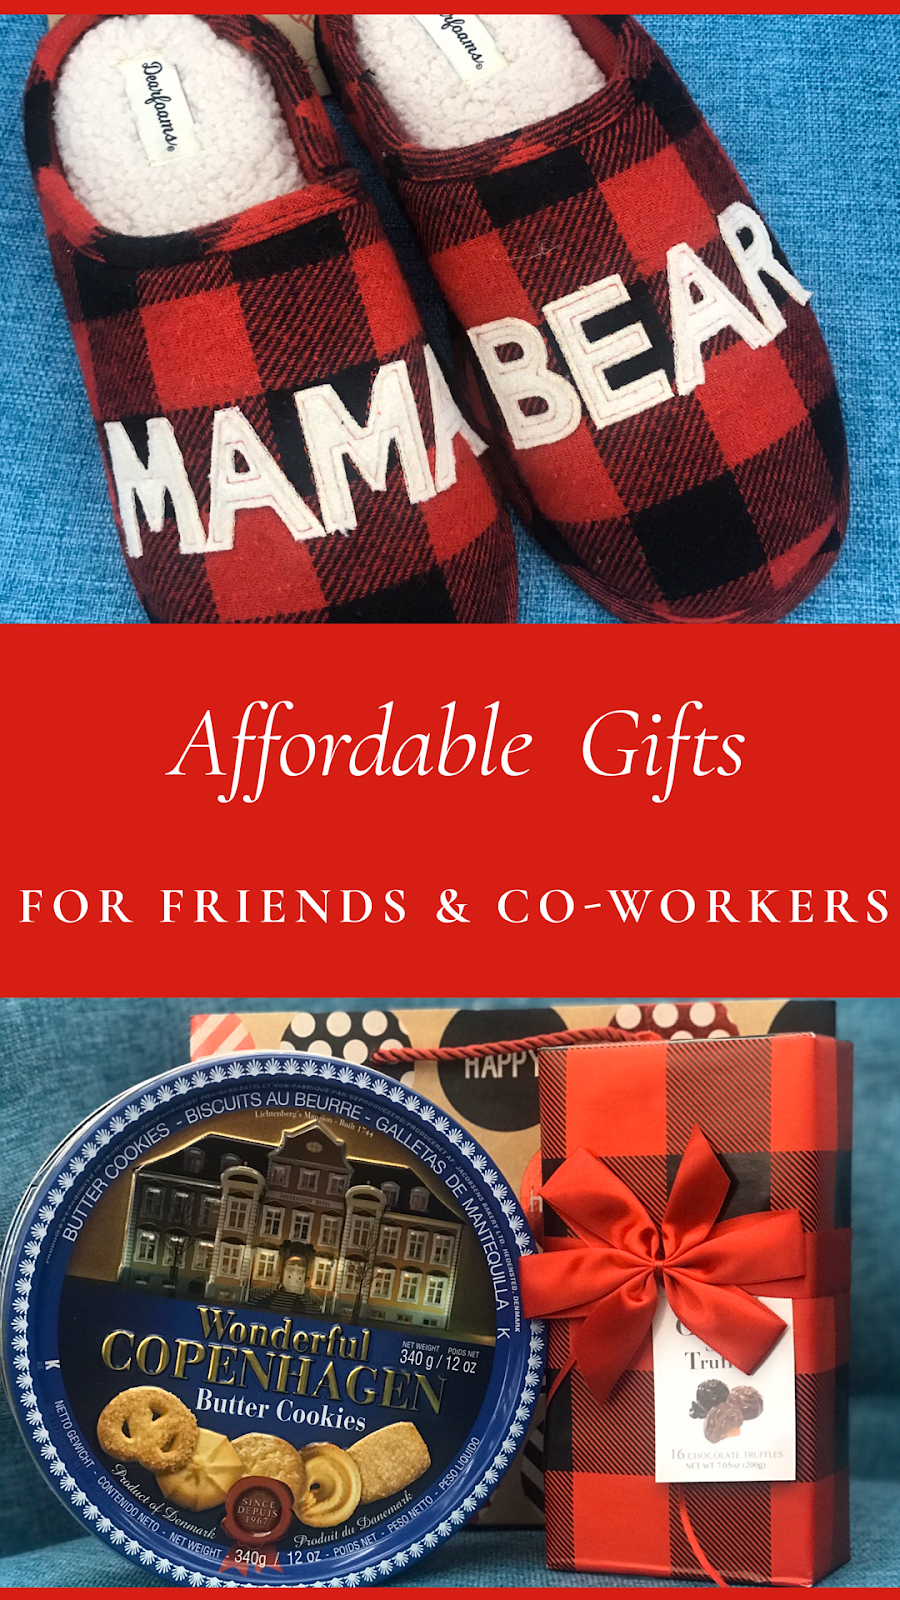 Making affordable lists for Christmas gift giving : friends and co-workers